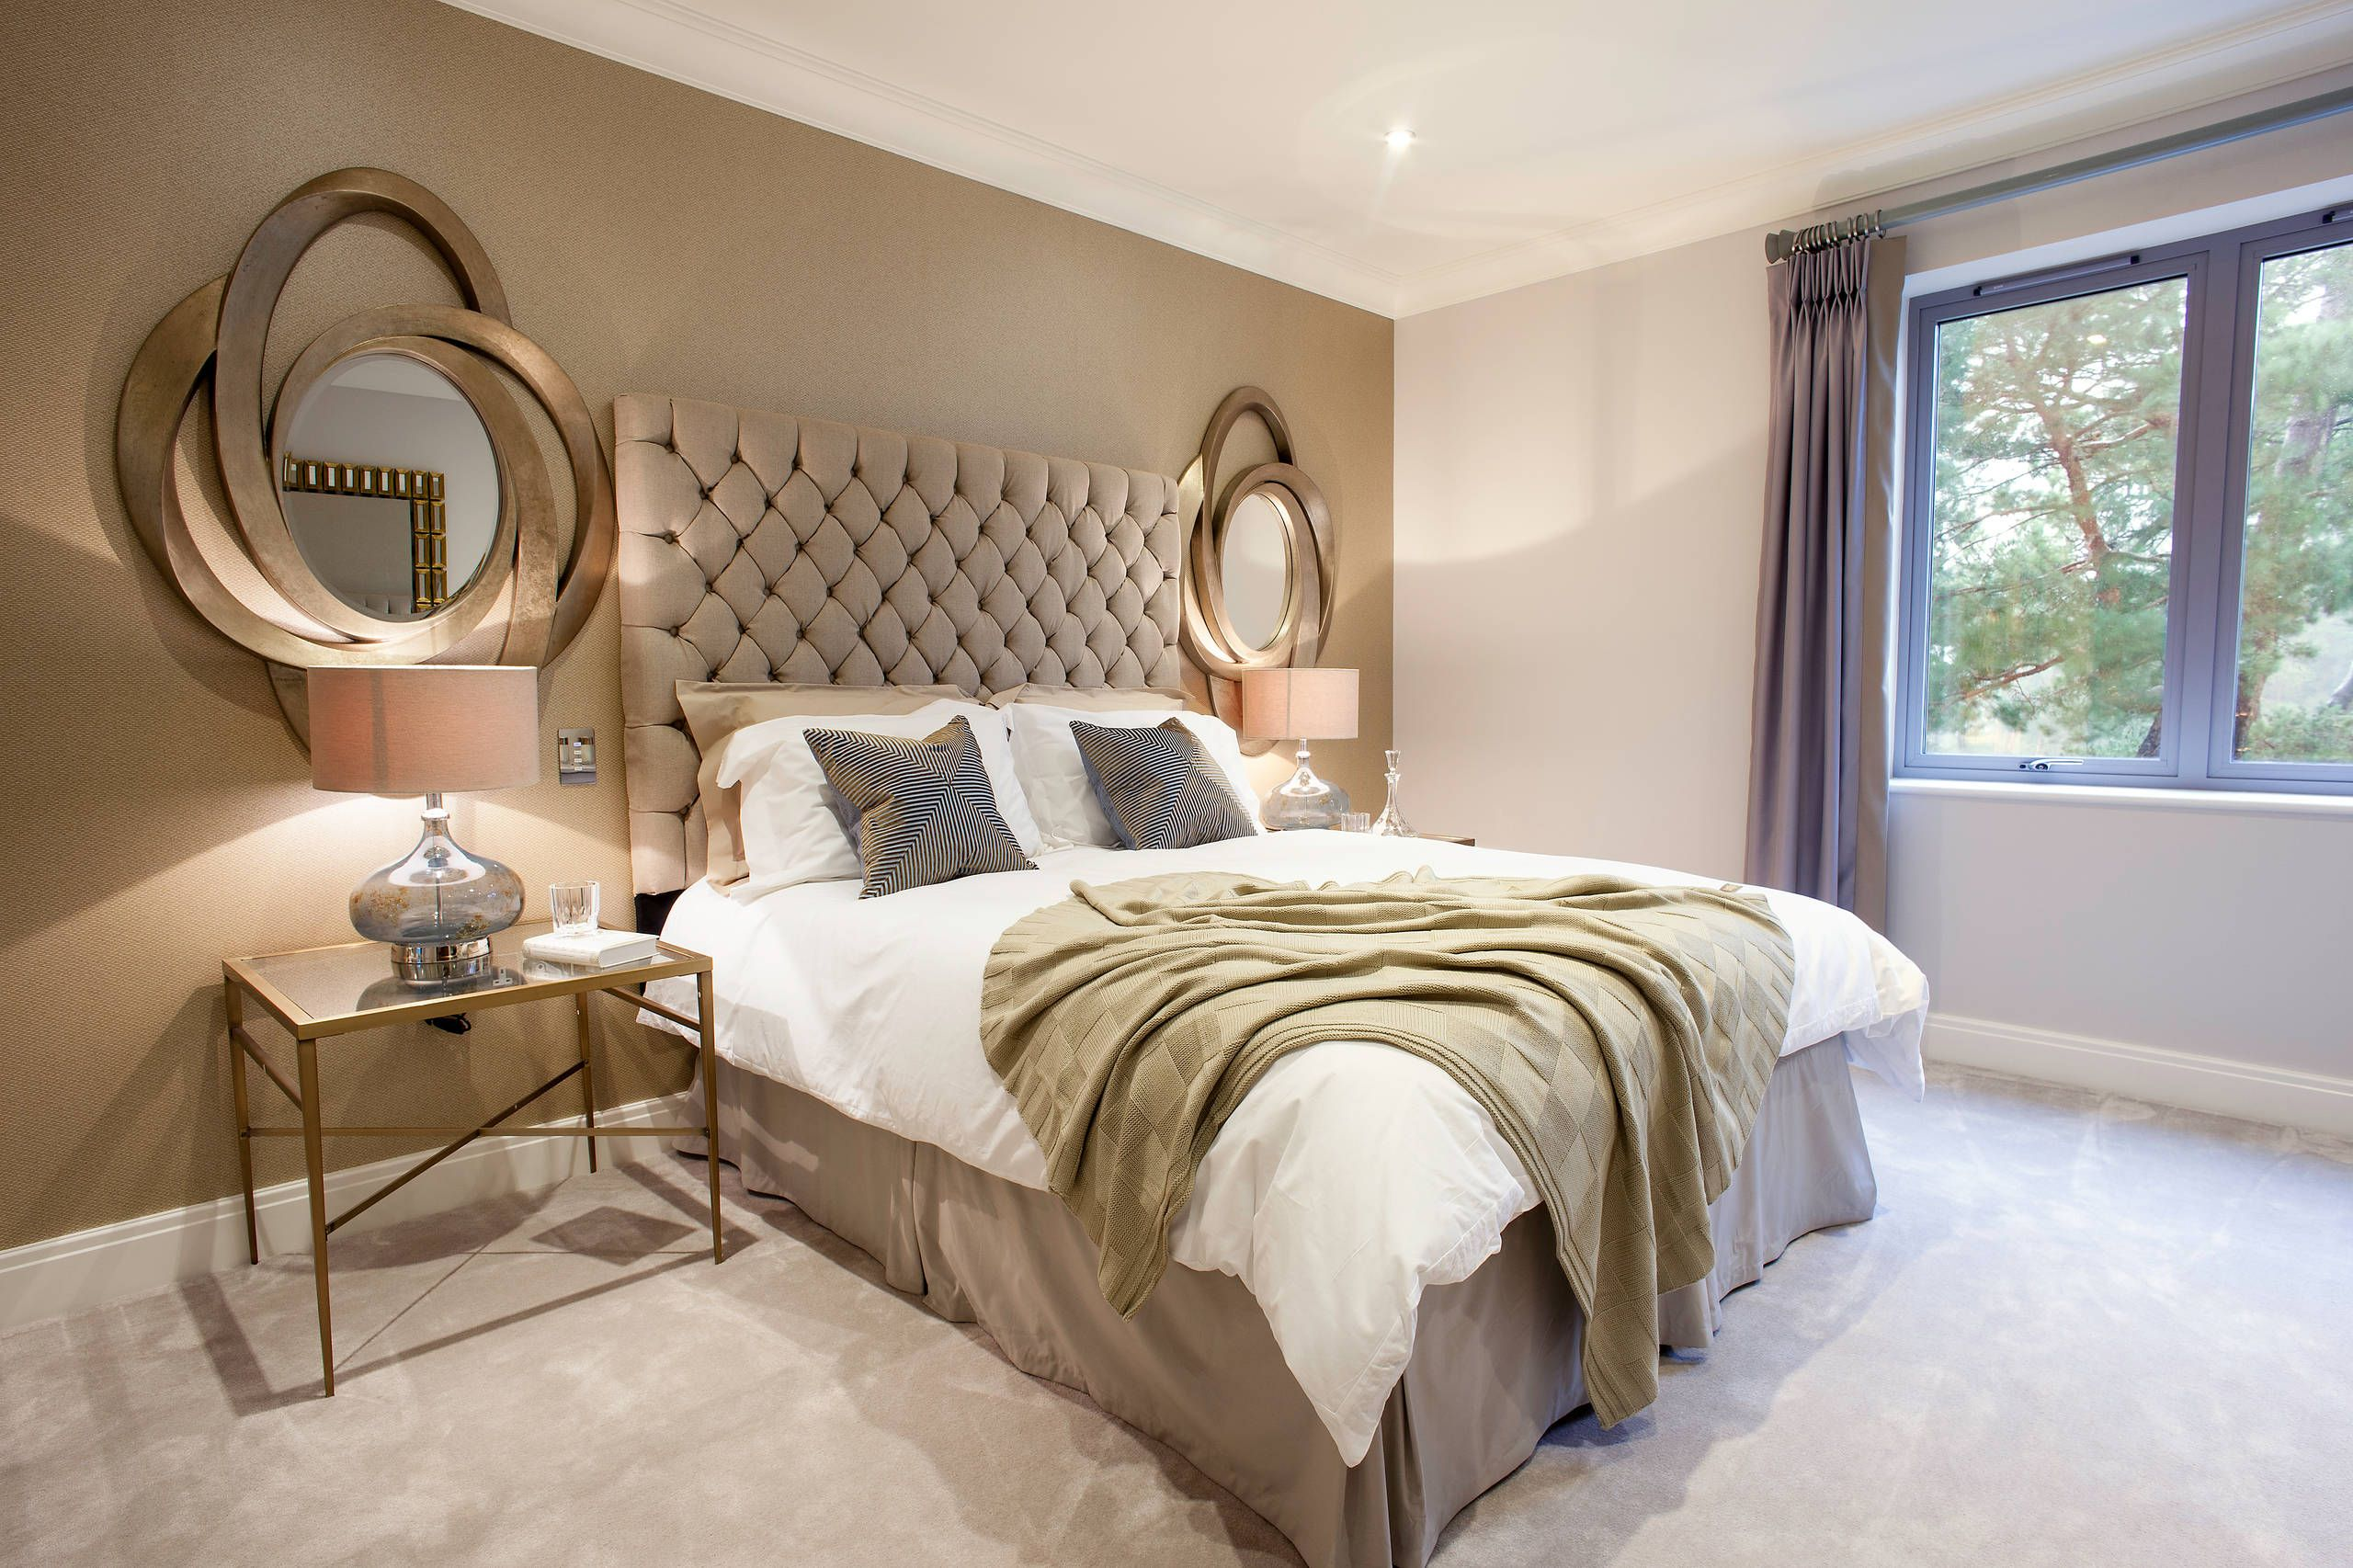 5 Easy Steps To Designing A Super Cozy Bedroom Glamourous